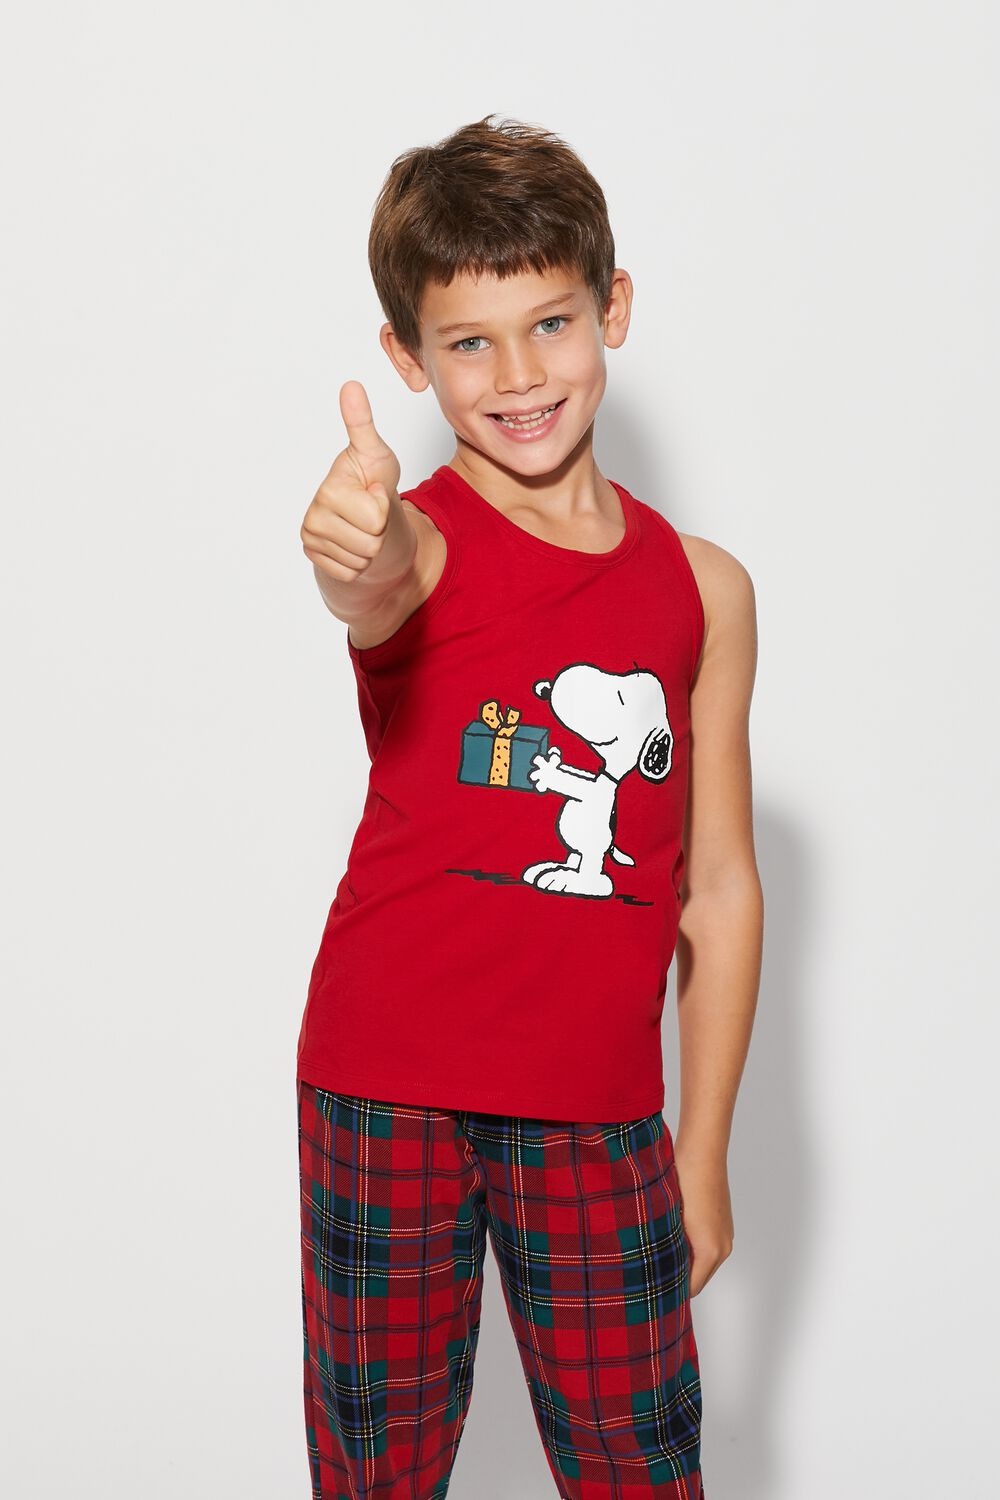 Peanuts© Cotton Vest Top